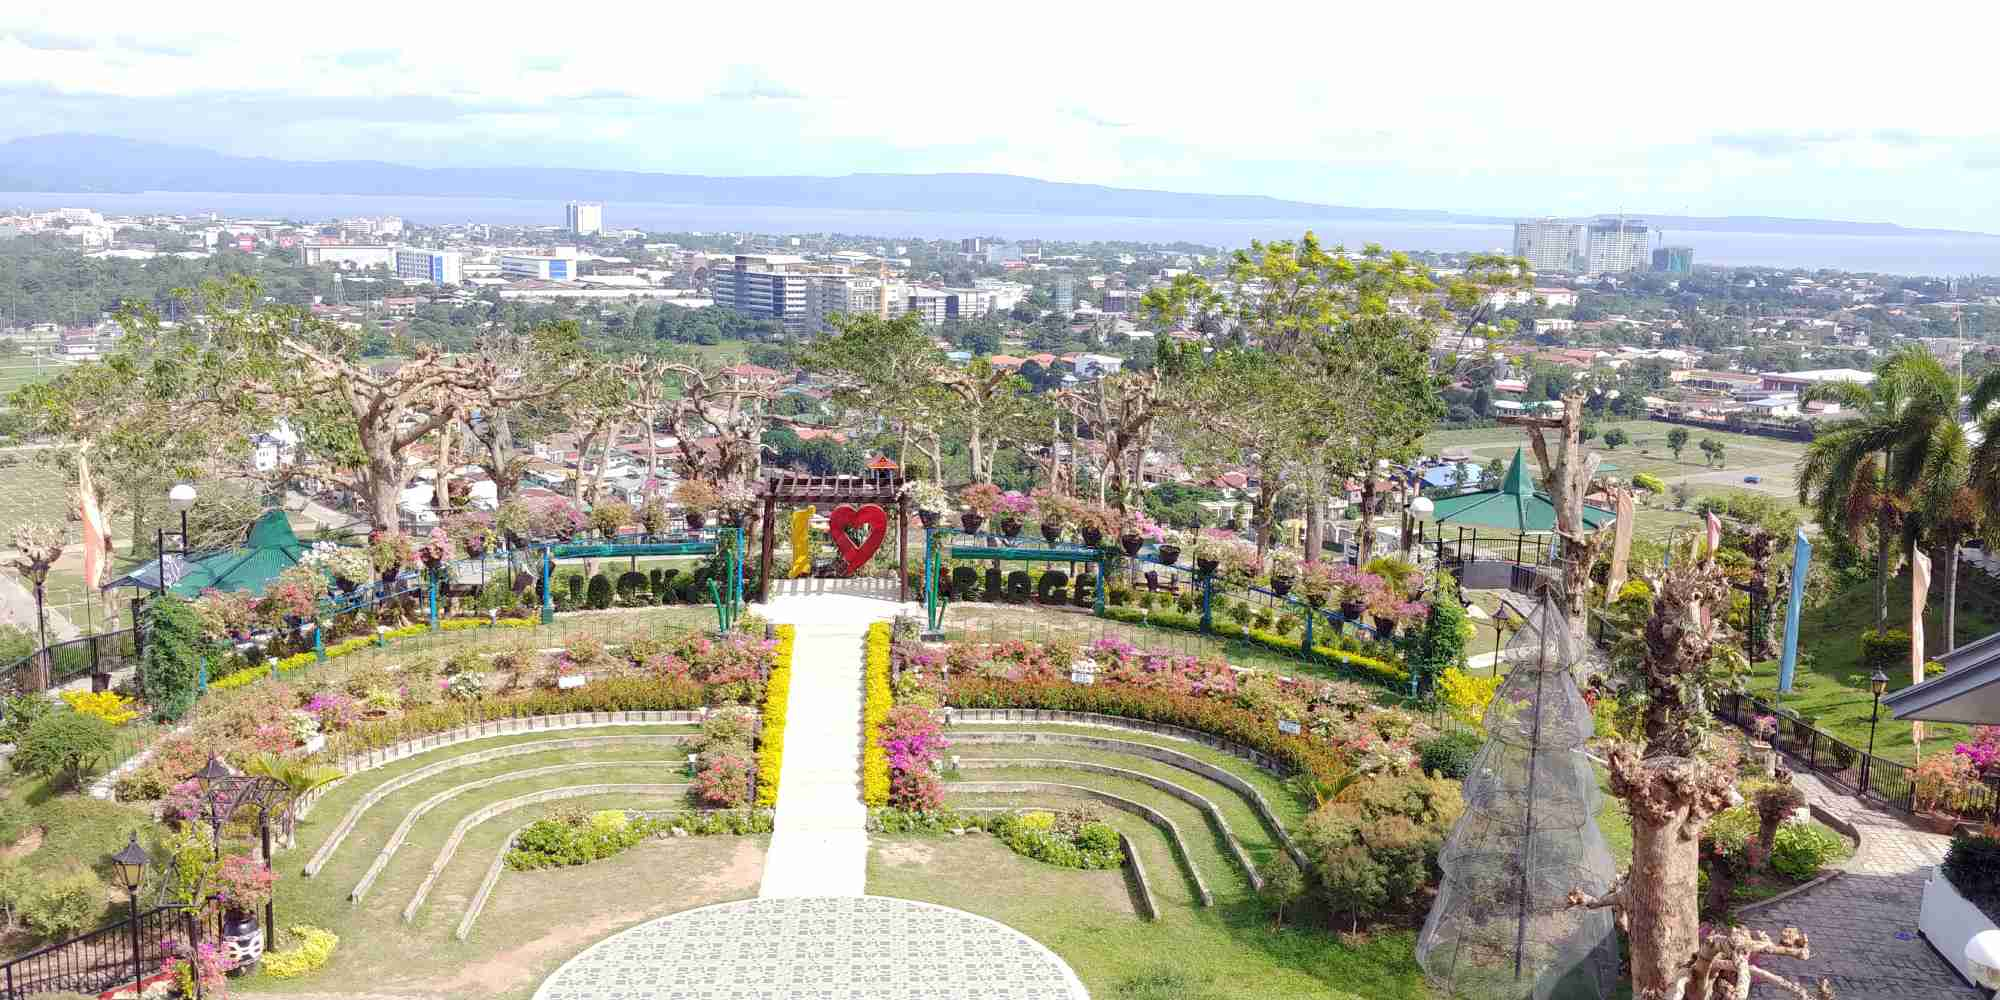 view from jackr's ridge in davao